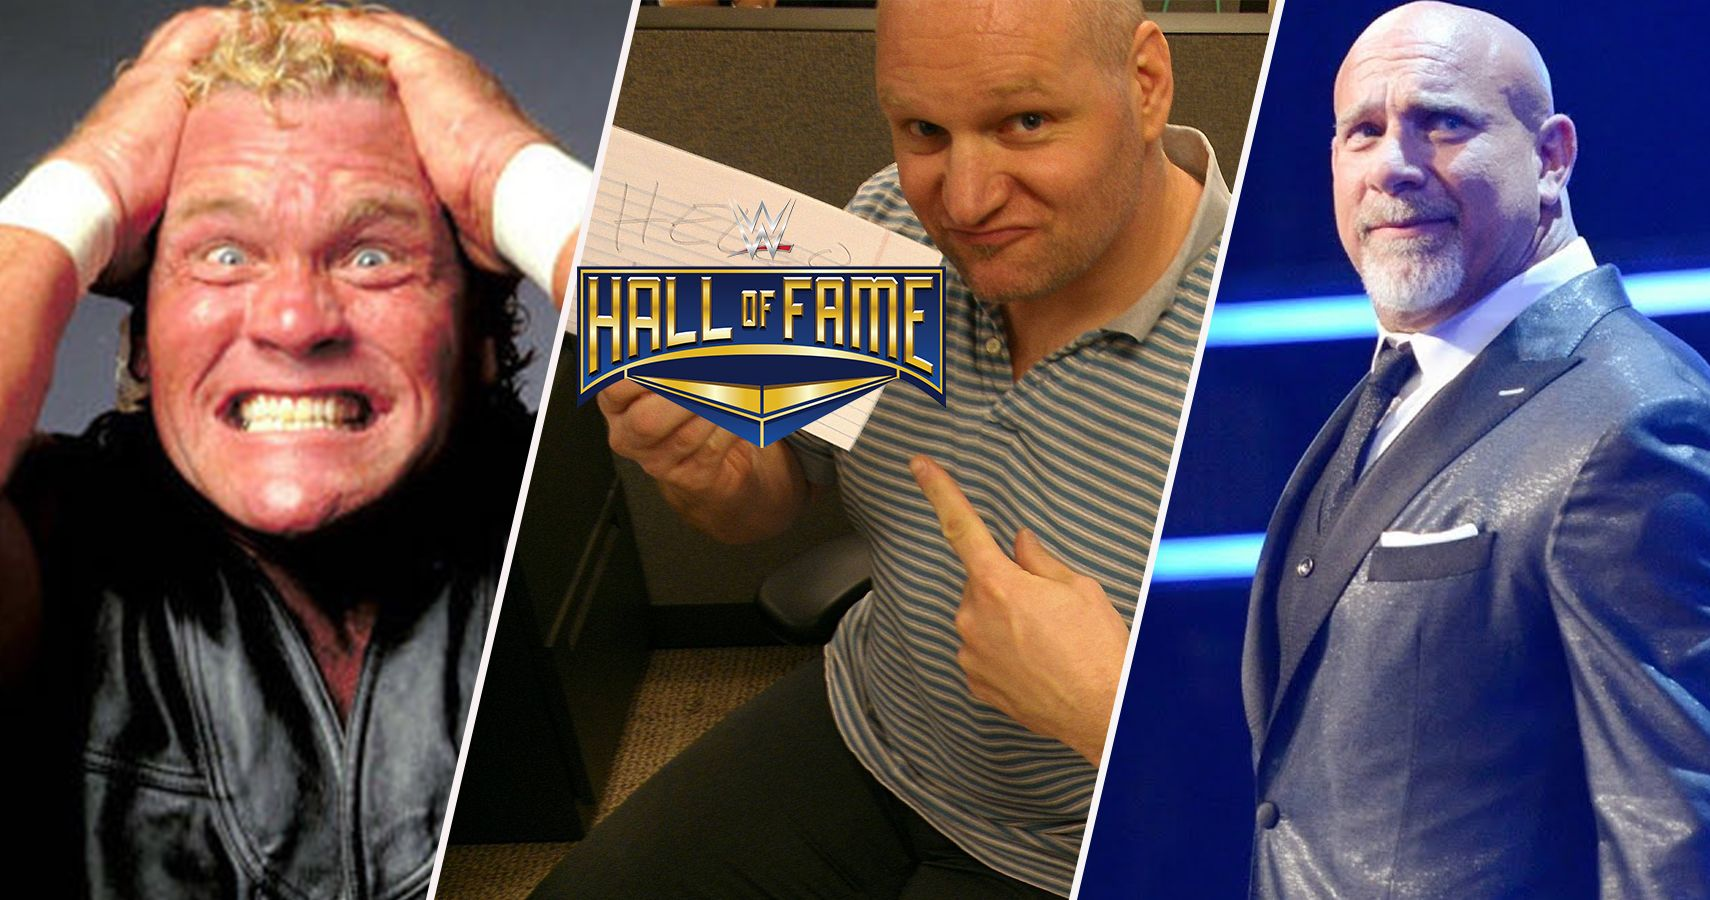 7 Undeserving Wrestlers Who Will Make The Wwe Hall Of Fame